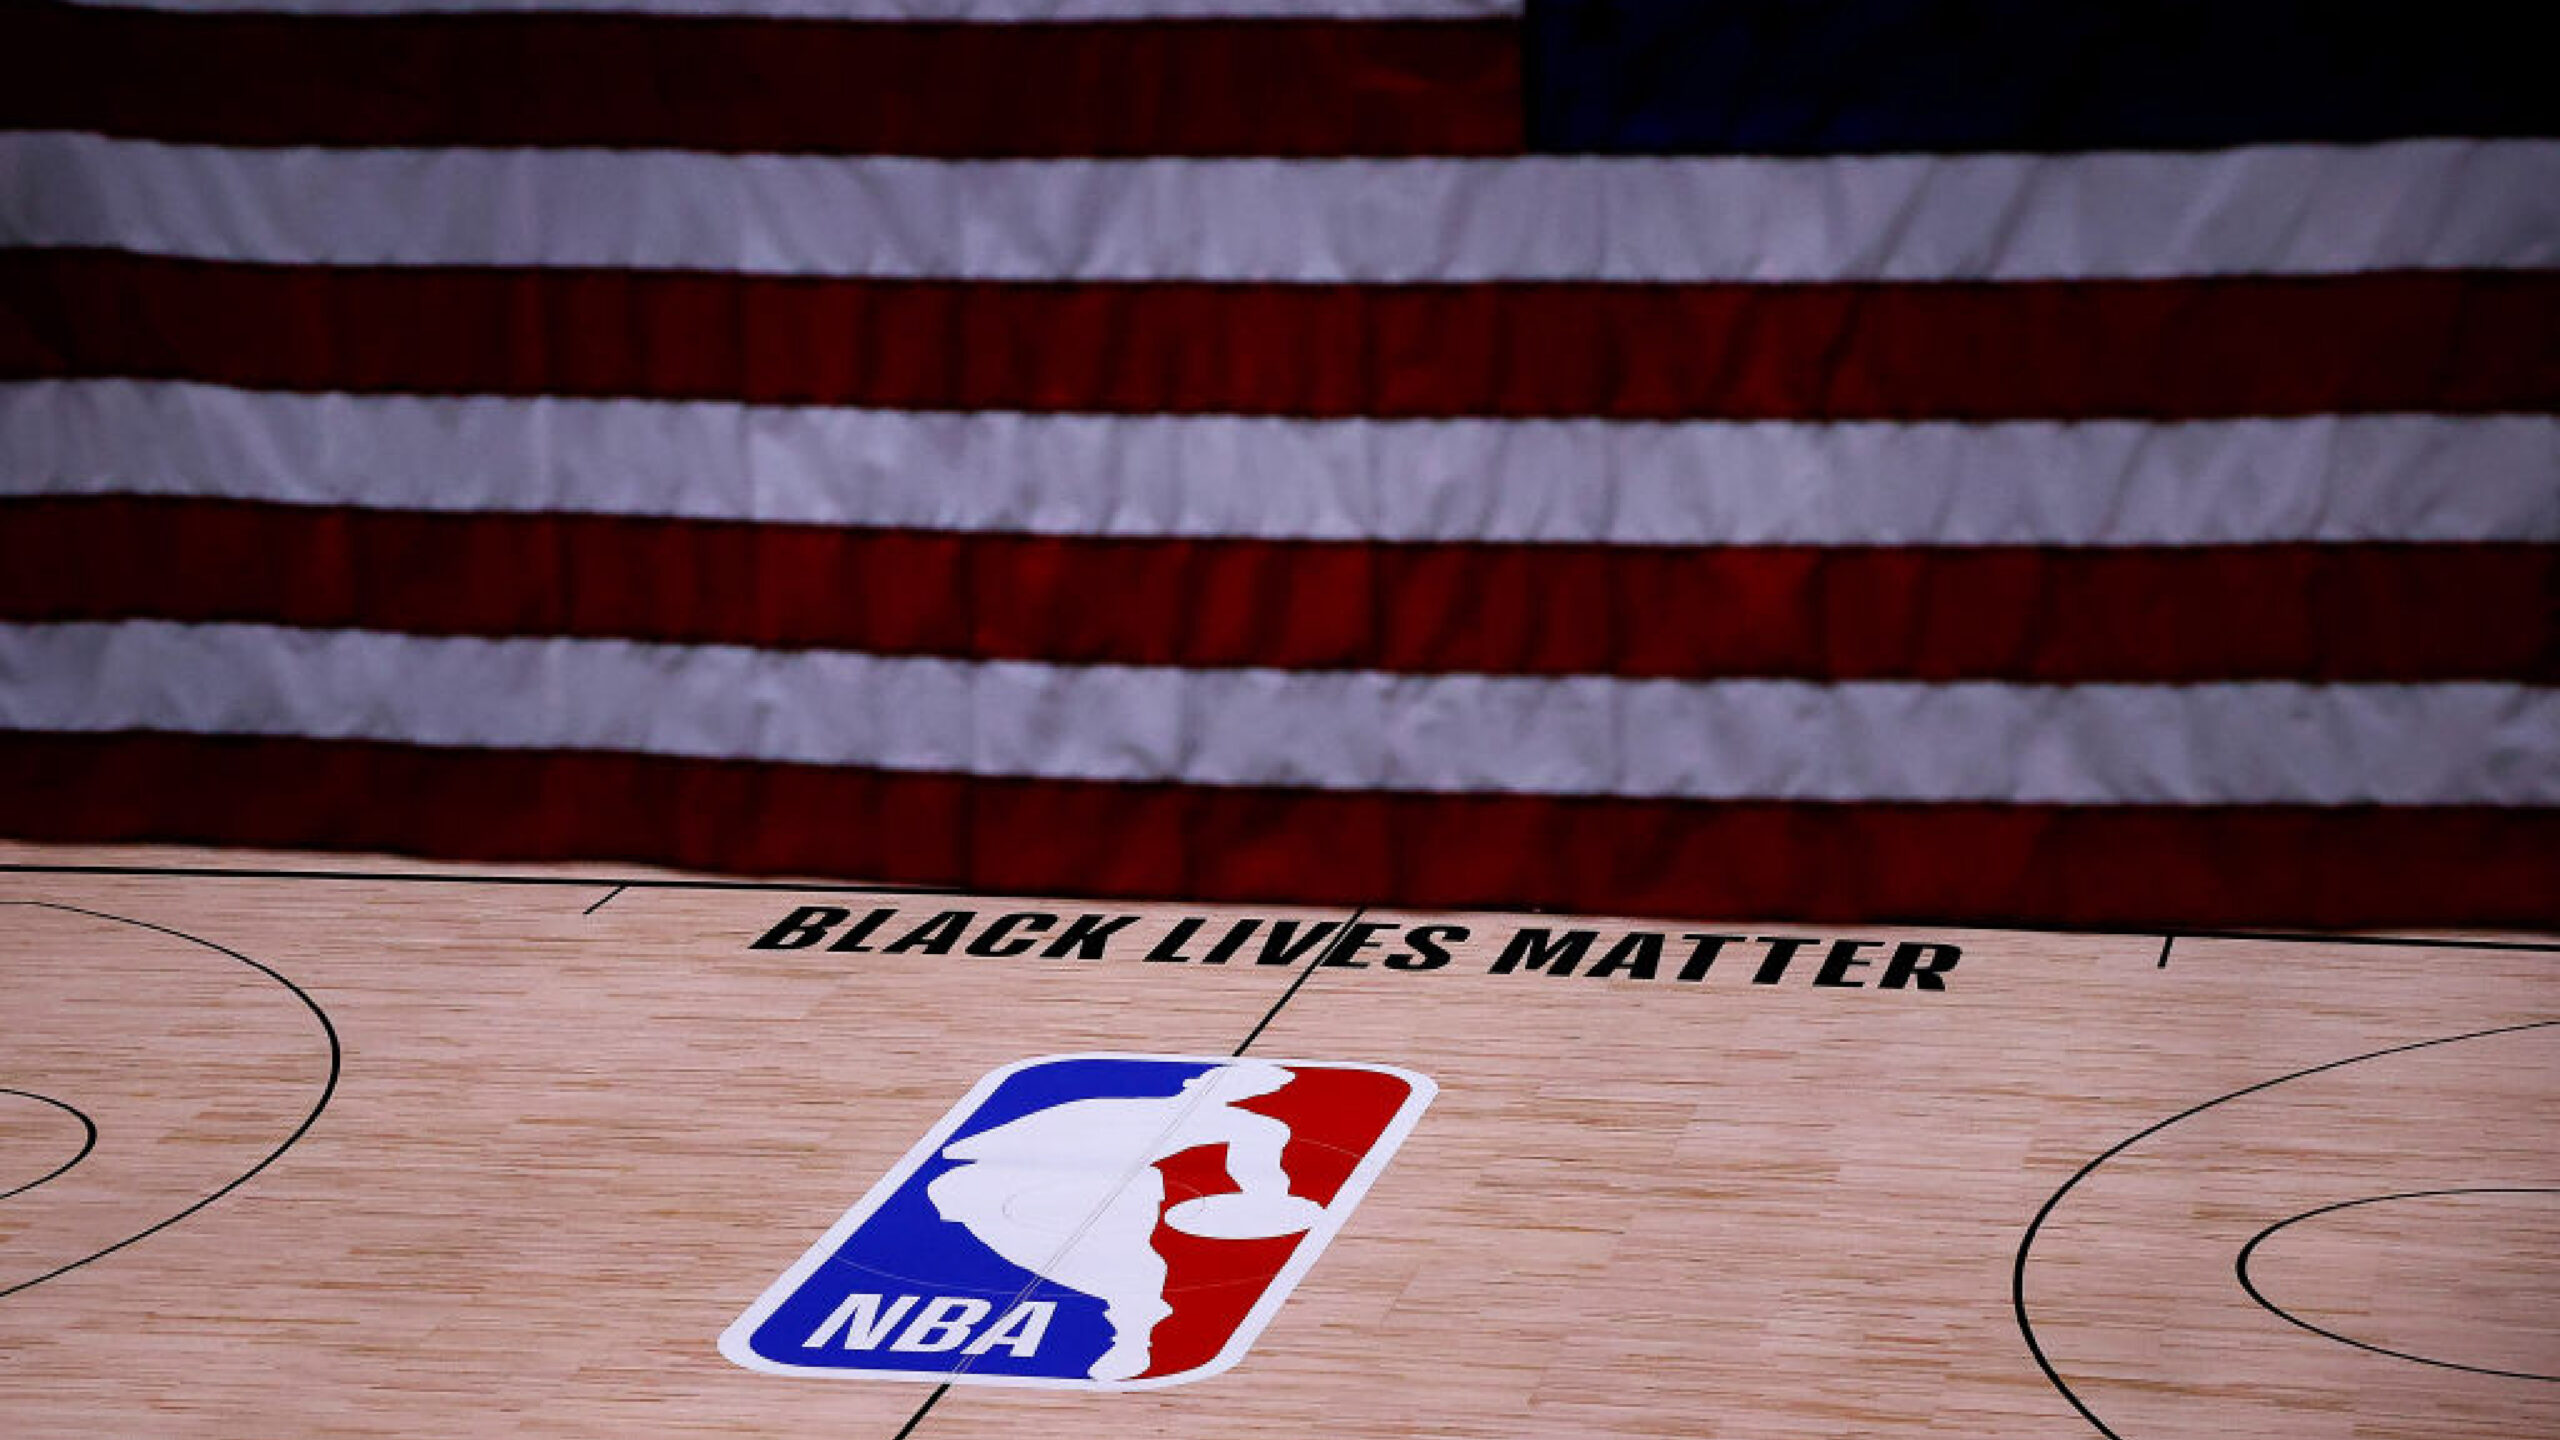 LAKE BUENA VISTA, FLORIDA - AUGUST 27: The Black Lives Matter logo is seen on an empty court as all NBA playoff games were postponed today during the 2020 NBA Playoffs at The Field House at ESPN Wide World Of Sports Complex on August 27, 2020 in Lake Buena Vista, Florida. NBA players have reportedly decided to resume the season after their walkout of playoff games on Wednesday to protest the shooting of Jacob Blake in Kenosha, Wisconsin. (Photo by Kevin C. Cox/Getty Images)